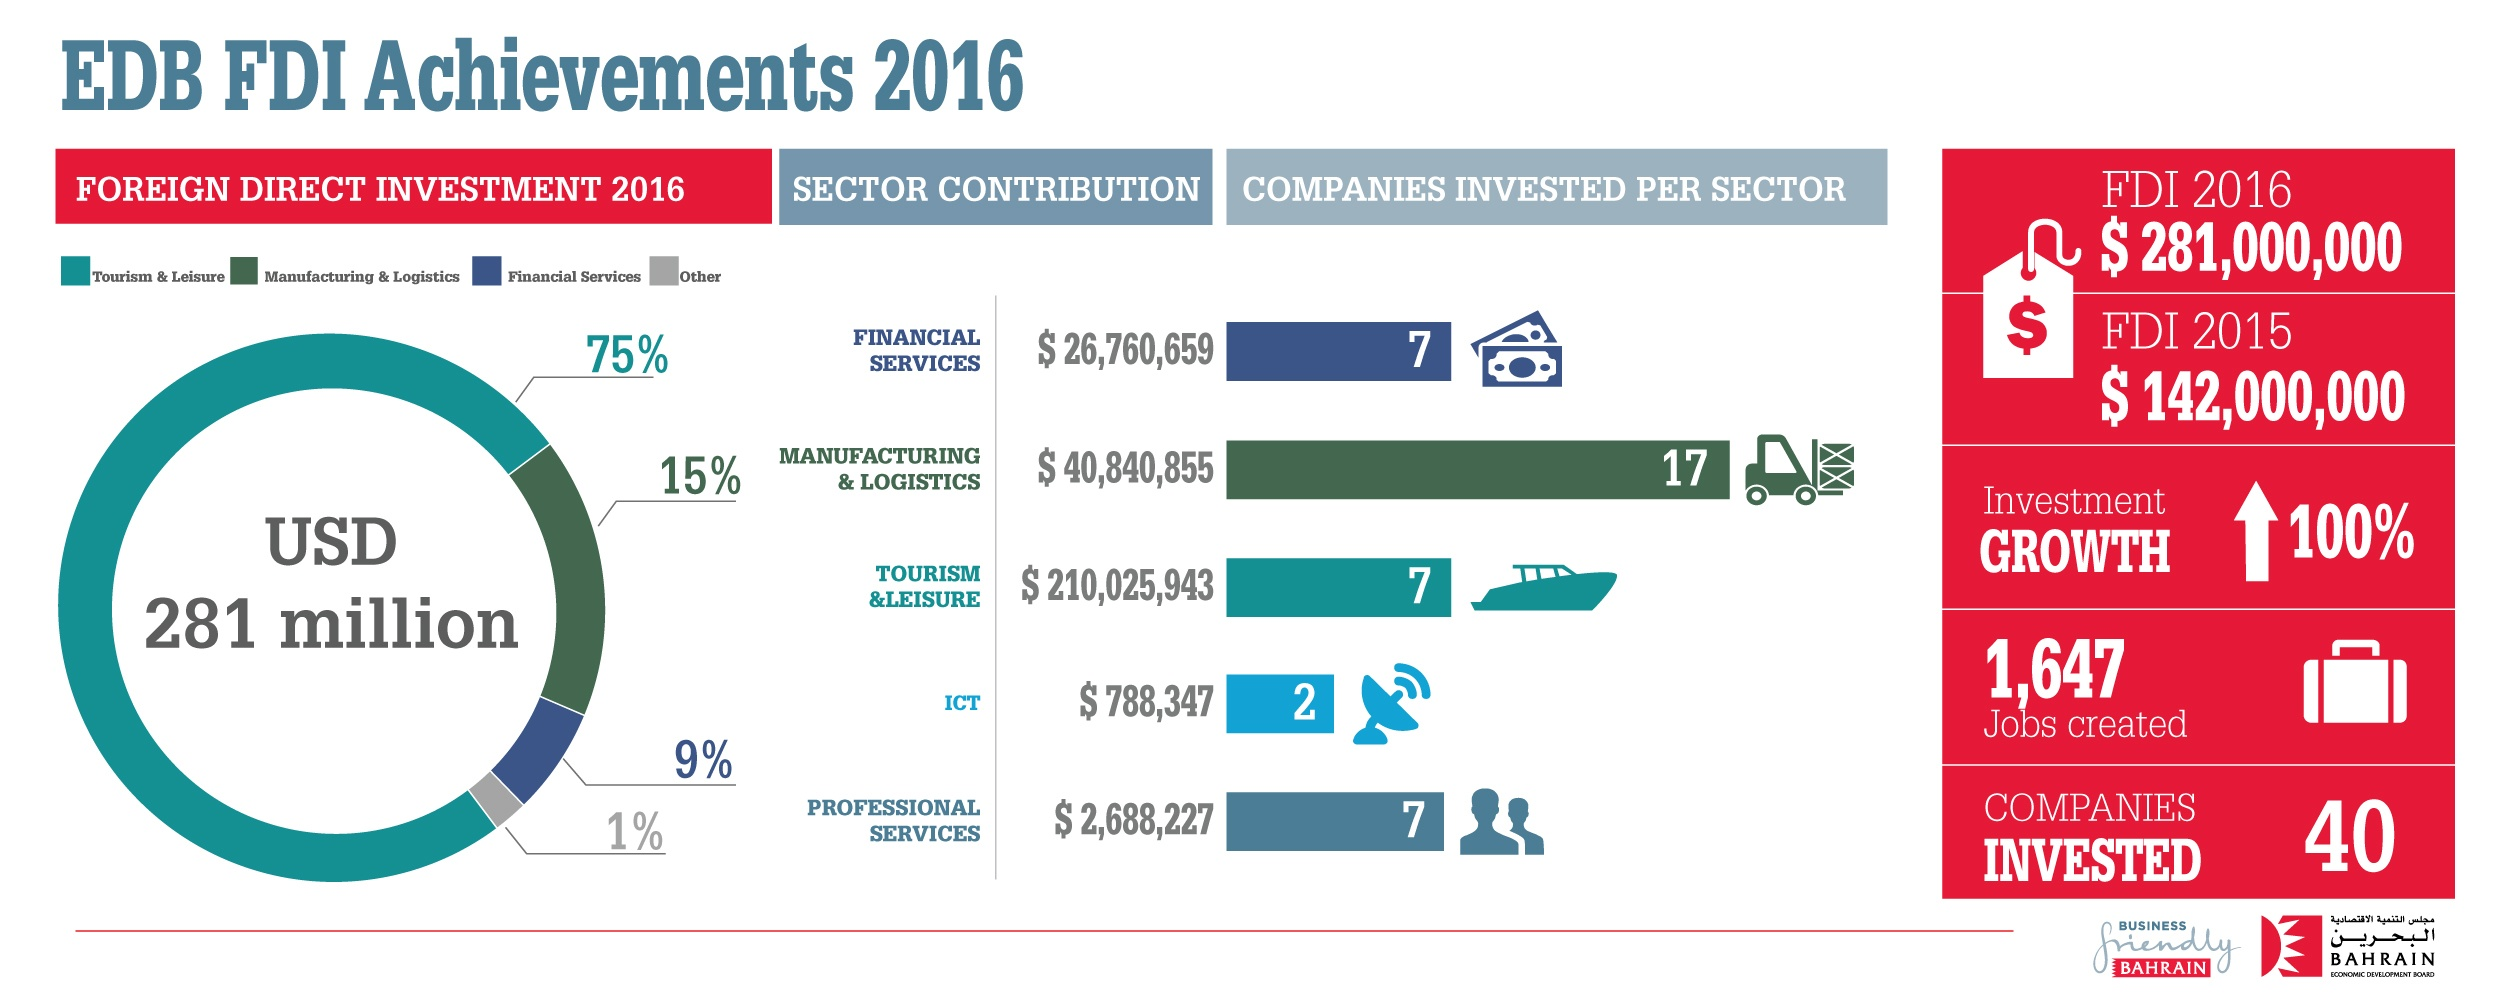 EDB Brings in BD 106 Million of Investments in 2016 – More than 1,600 jobs to be generated over the next three years